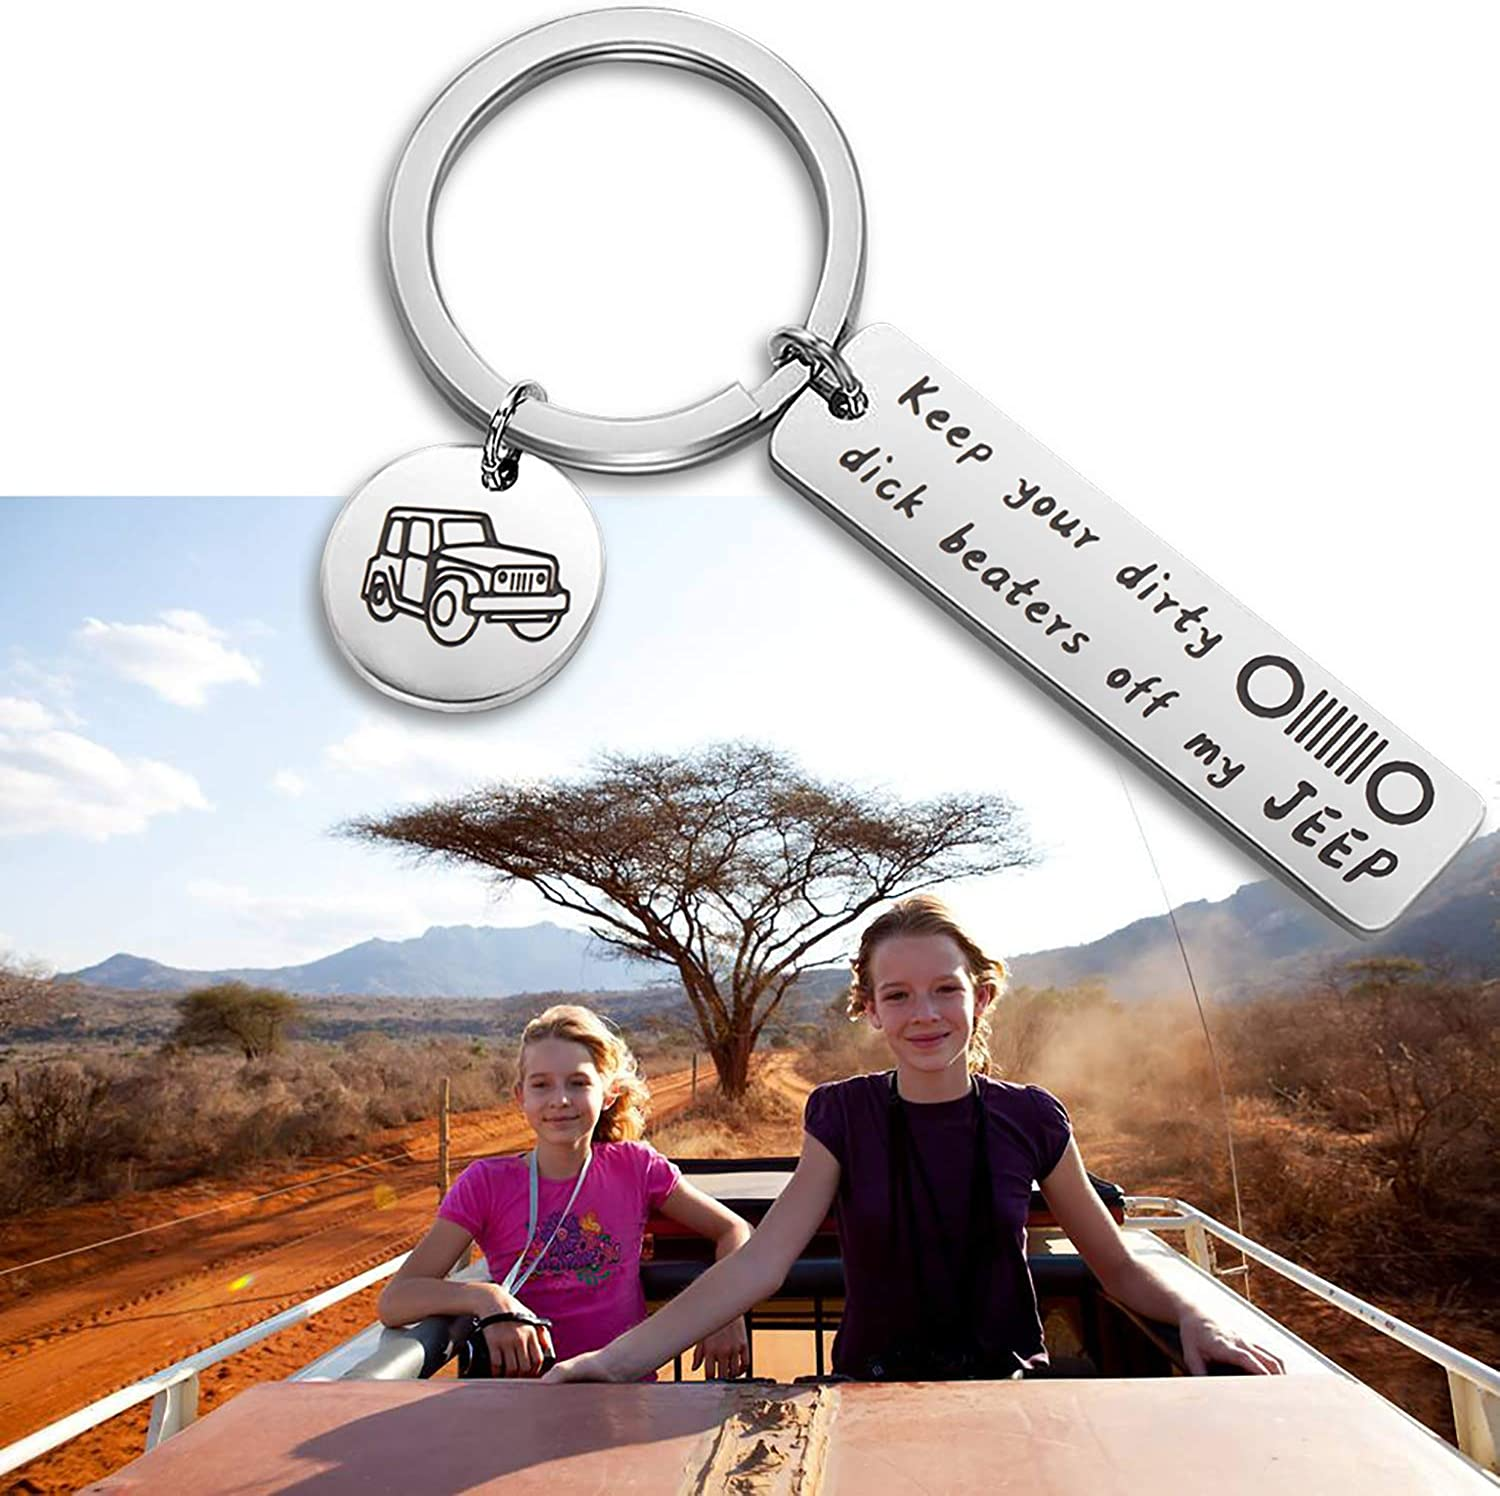 SEIRAA Jeep Keychain Gift for Jeep Lover Jeep Girl Gift Keep Your Dirty Dick Beaters Off My Jeep Keychain New Car Gift